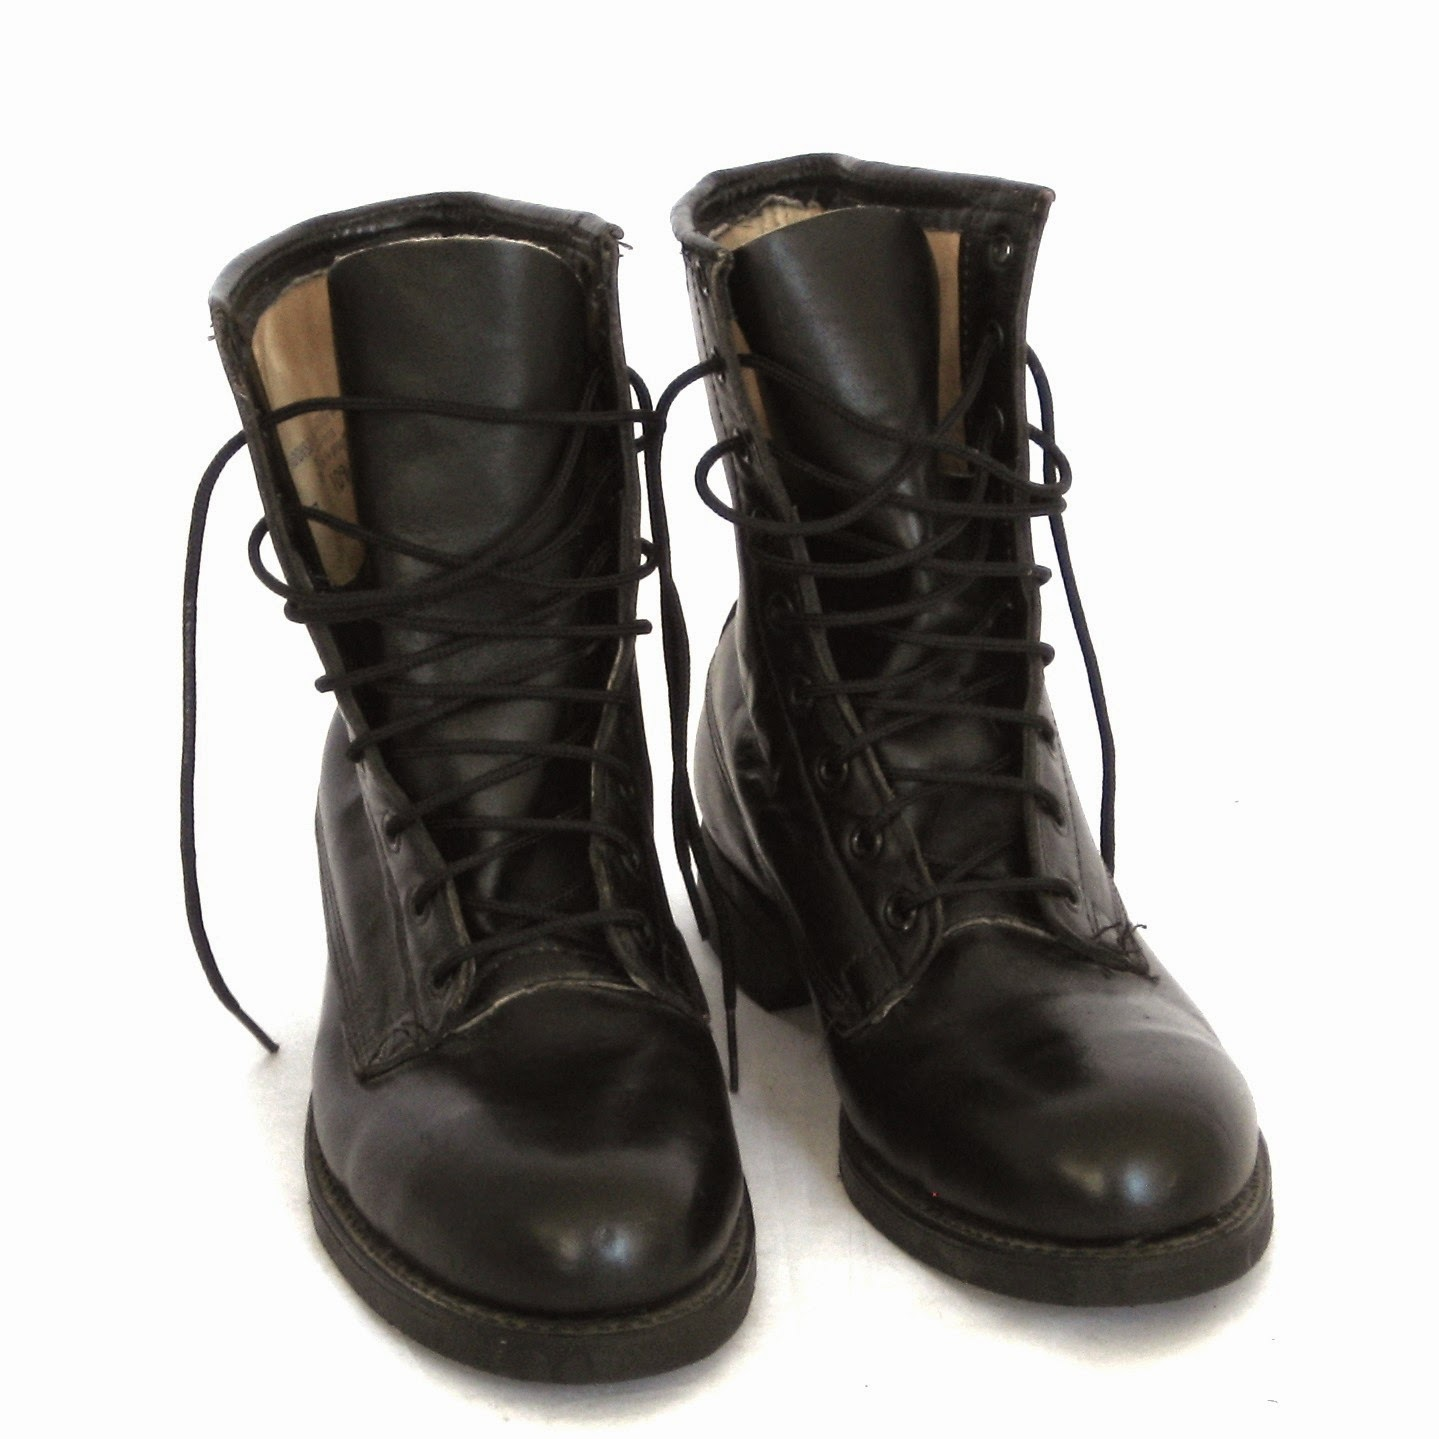 black combat boots for men latest boots styles